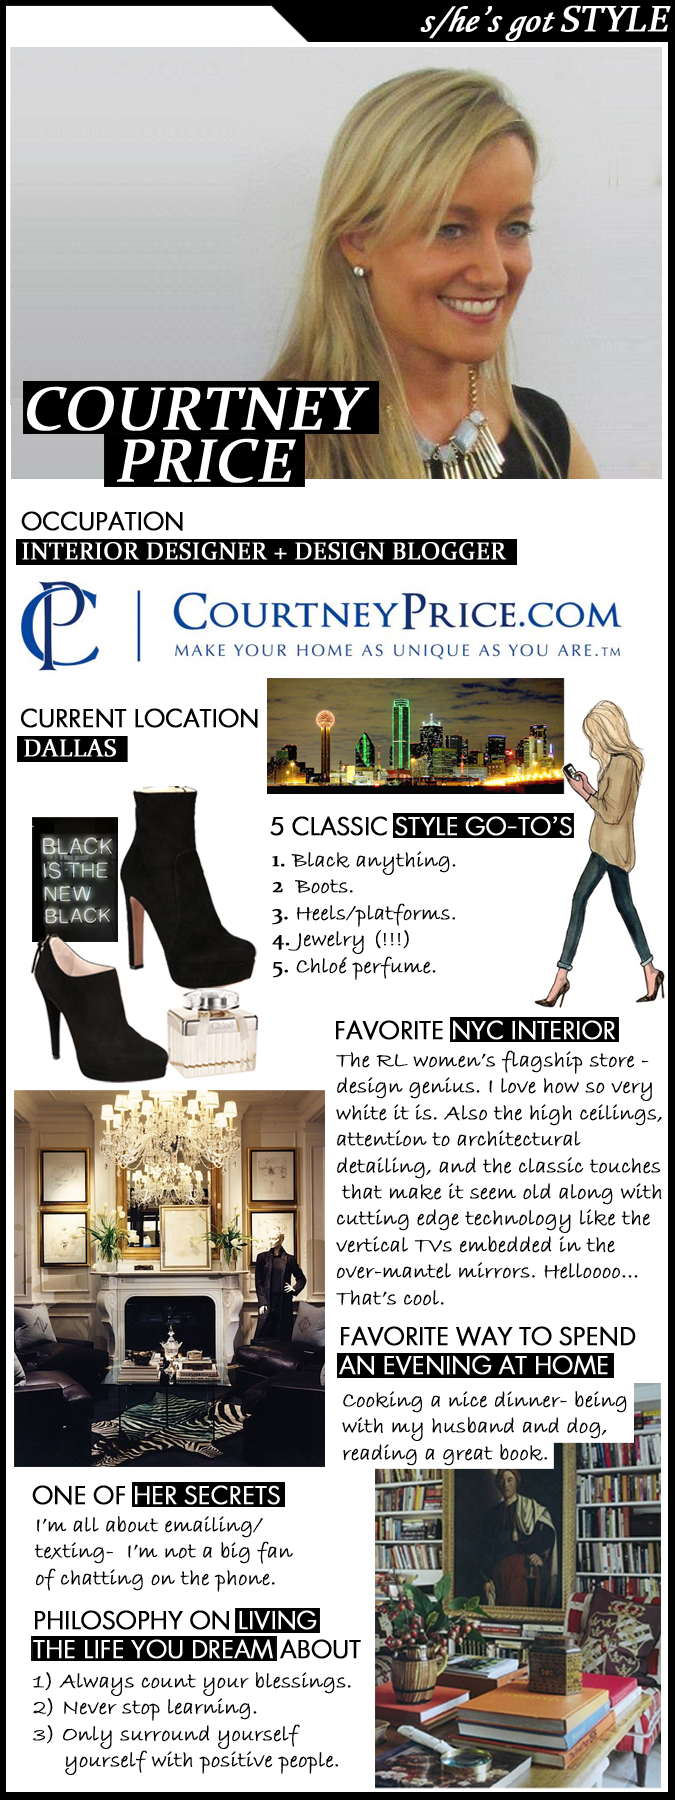 shes-got-style-courtney-price